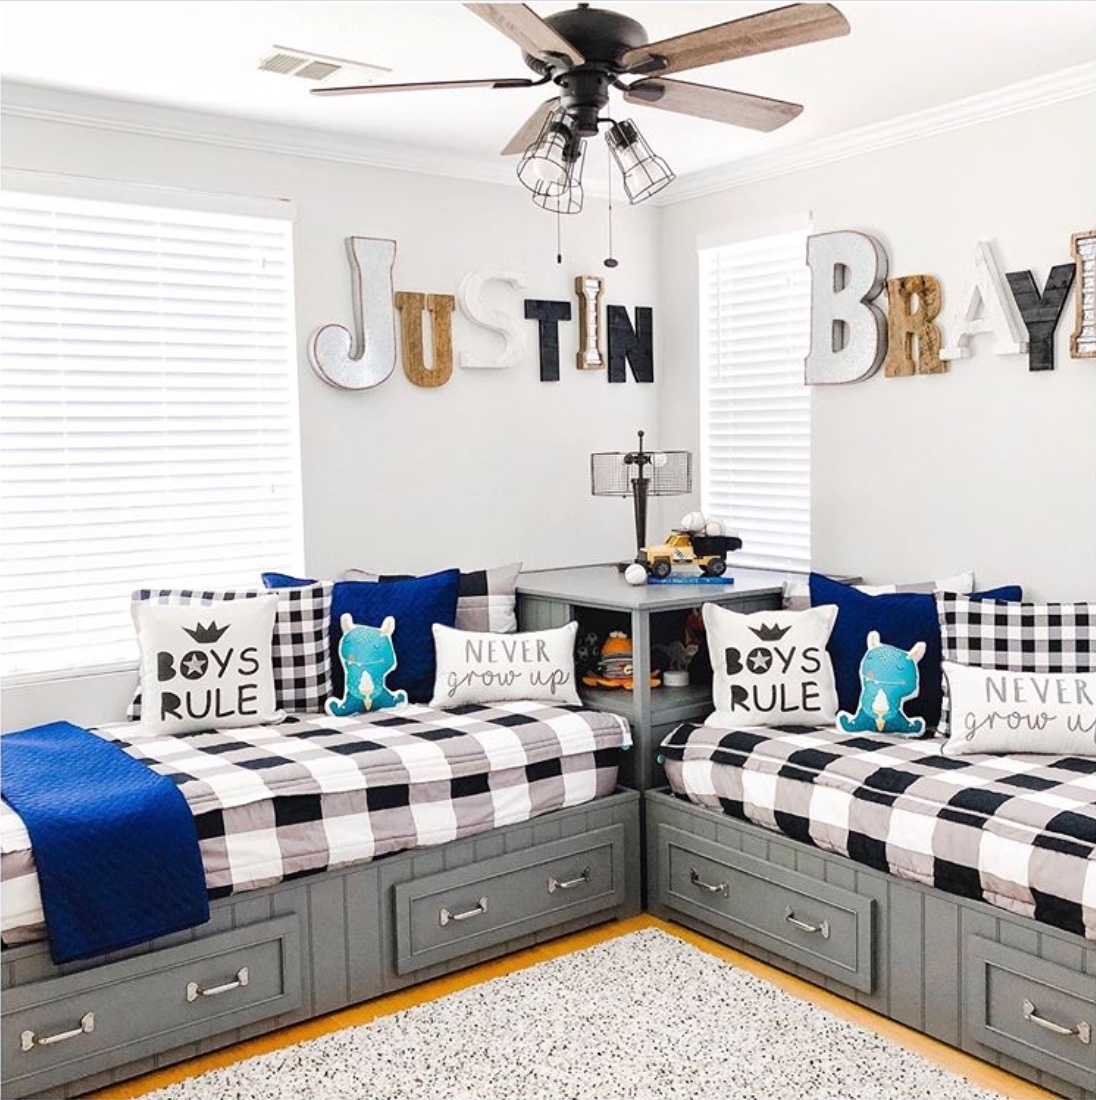 11+ Beautiful Shared Room For Kids Ideas - The Wonder Cottage